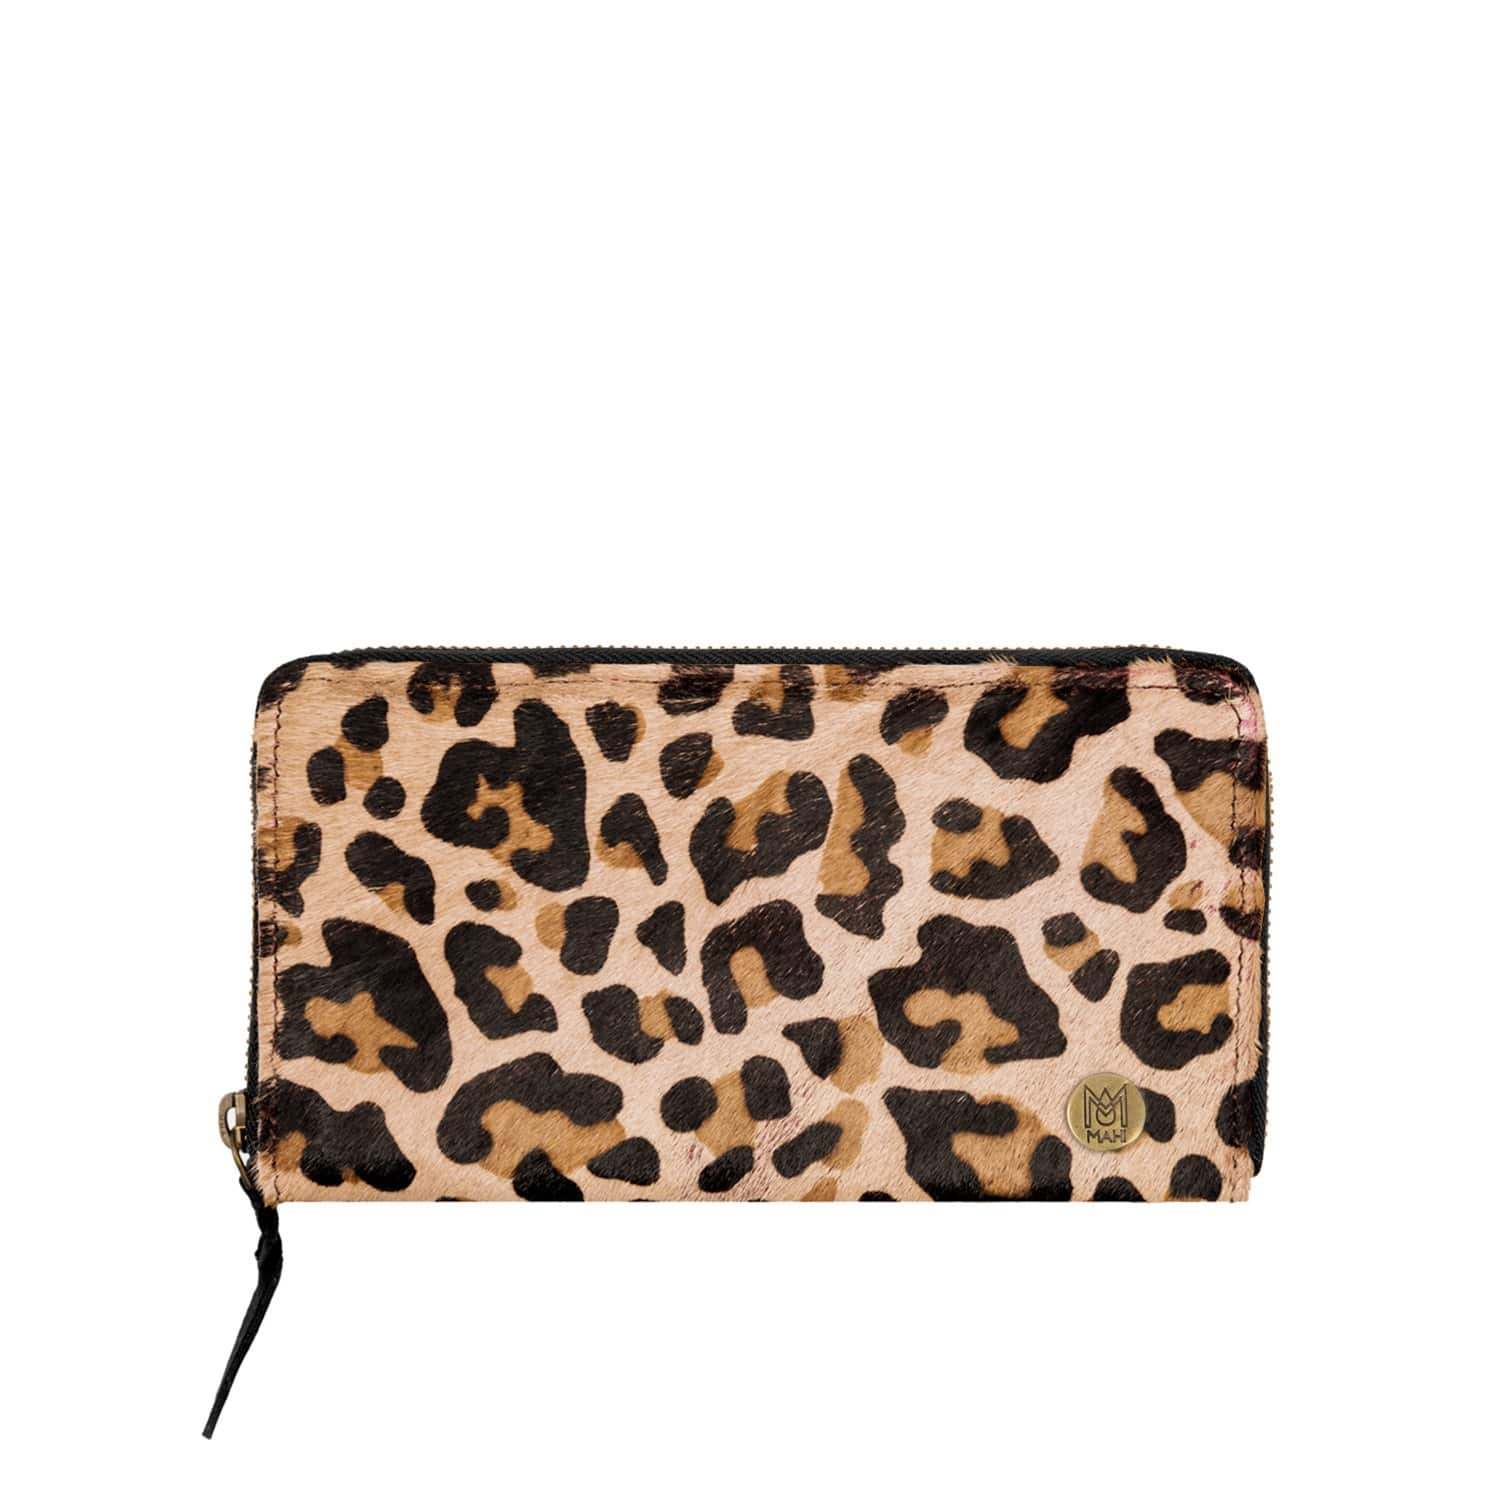 3e784b308330 Classic Ladies Purse In Leopard Print Pony Hair Leather | MAHI ...